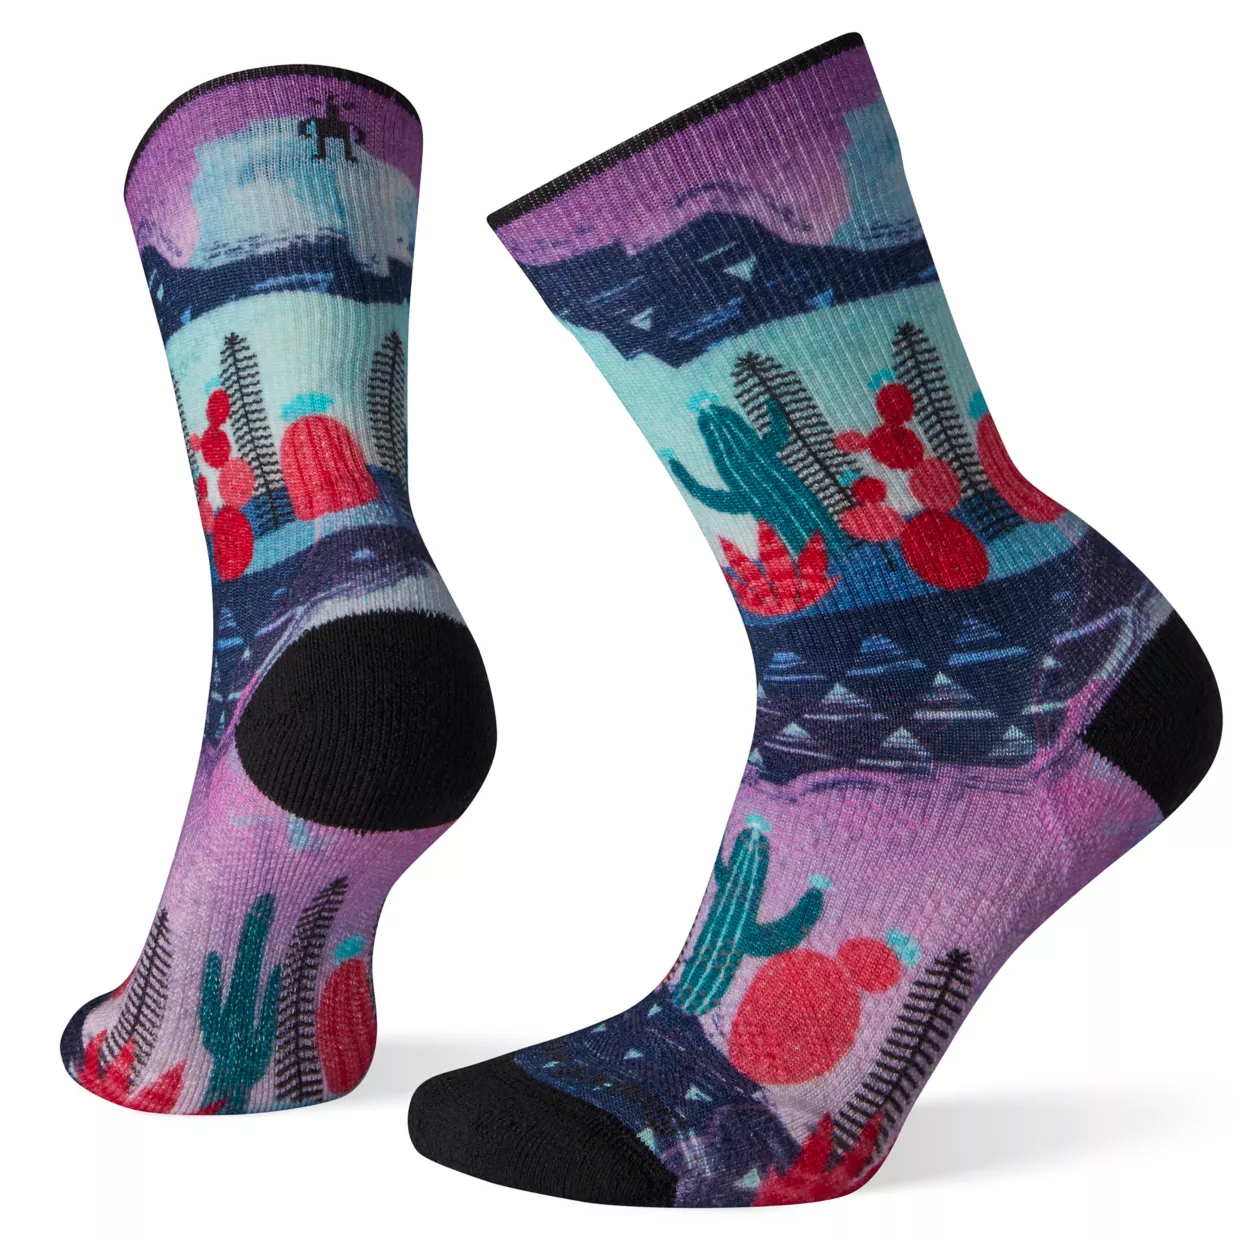 SMARTWOOL Smartwool Women's PhD Outdoor Light Print Crew Hiking Socks